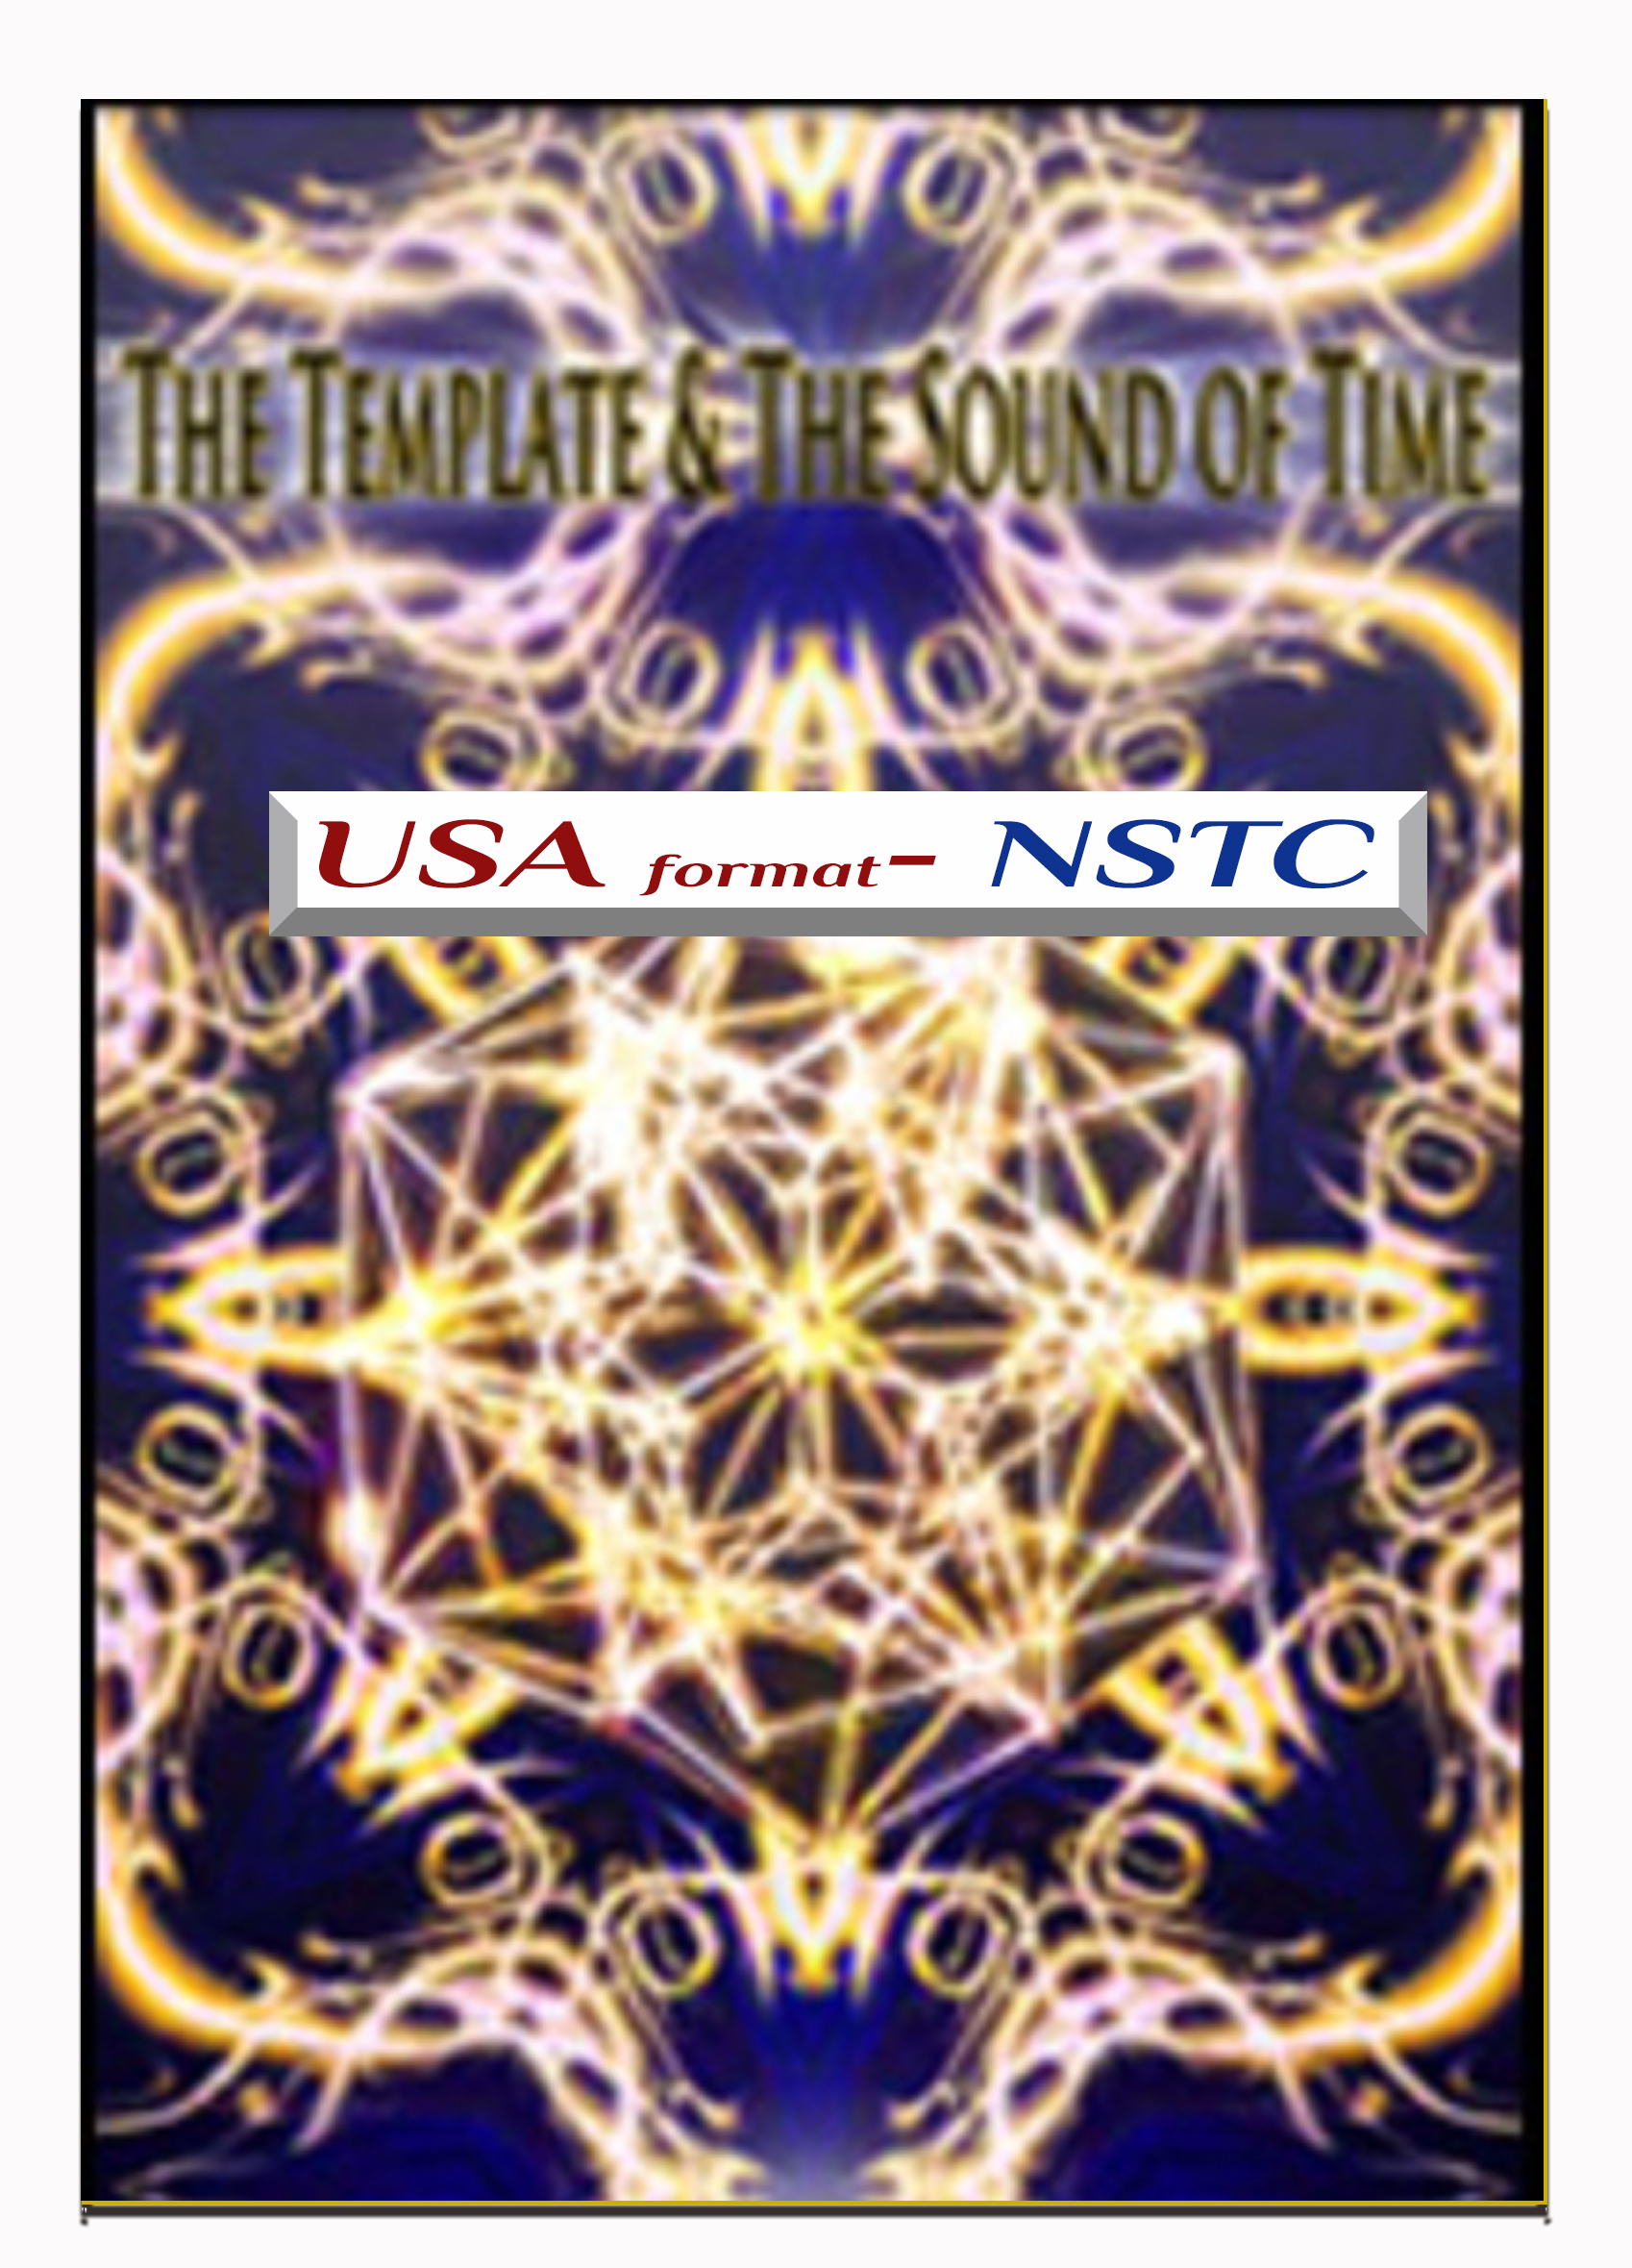 USA- Worldbridger Phi-sonic Resonance.